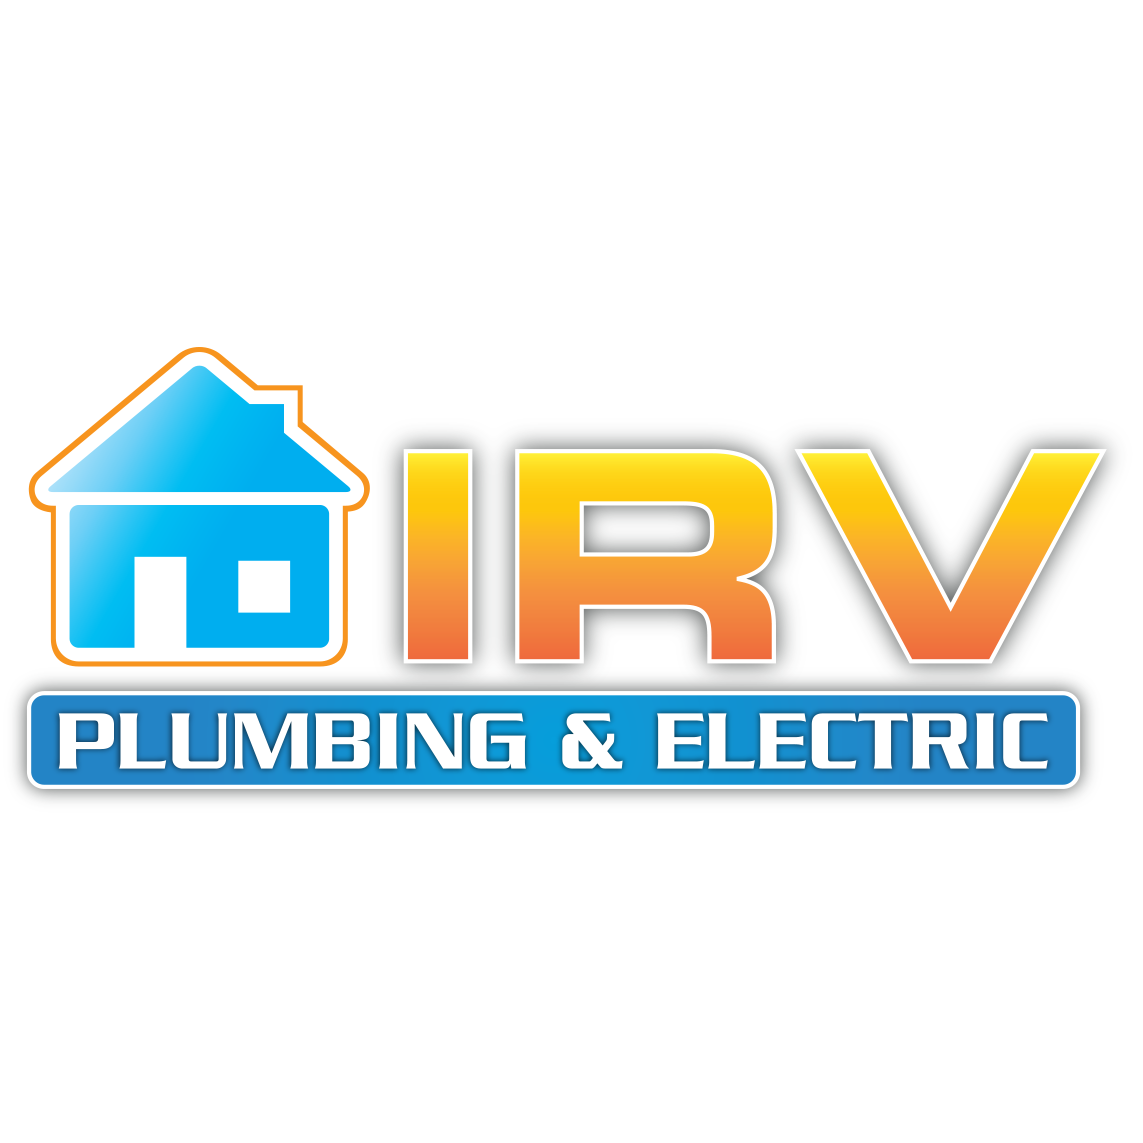 IRV Plumbing & Electric - Charlotte, NC - Business Profile